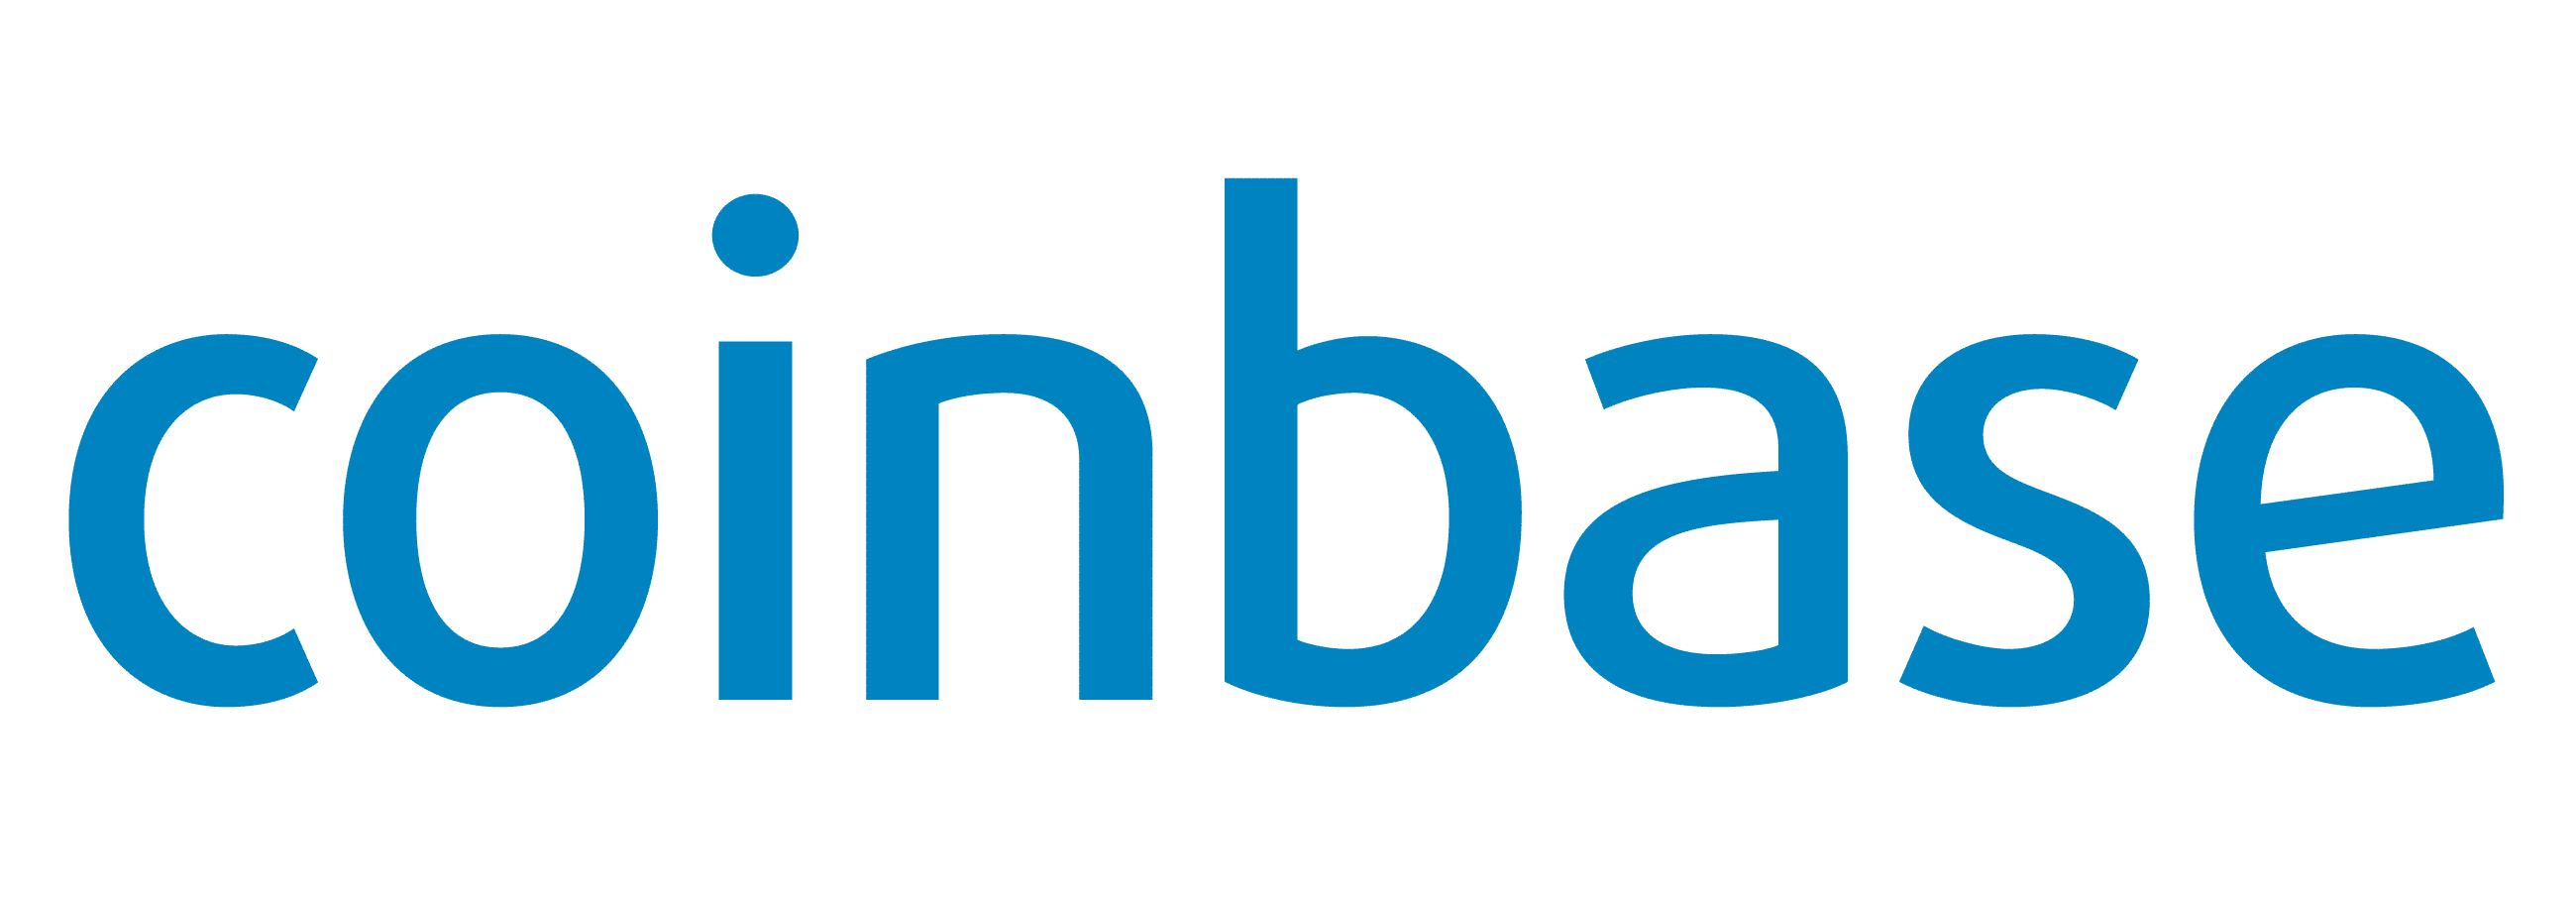 Coinbase exchange logo - Cryptocurrency exchanges vergelijken